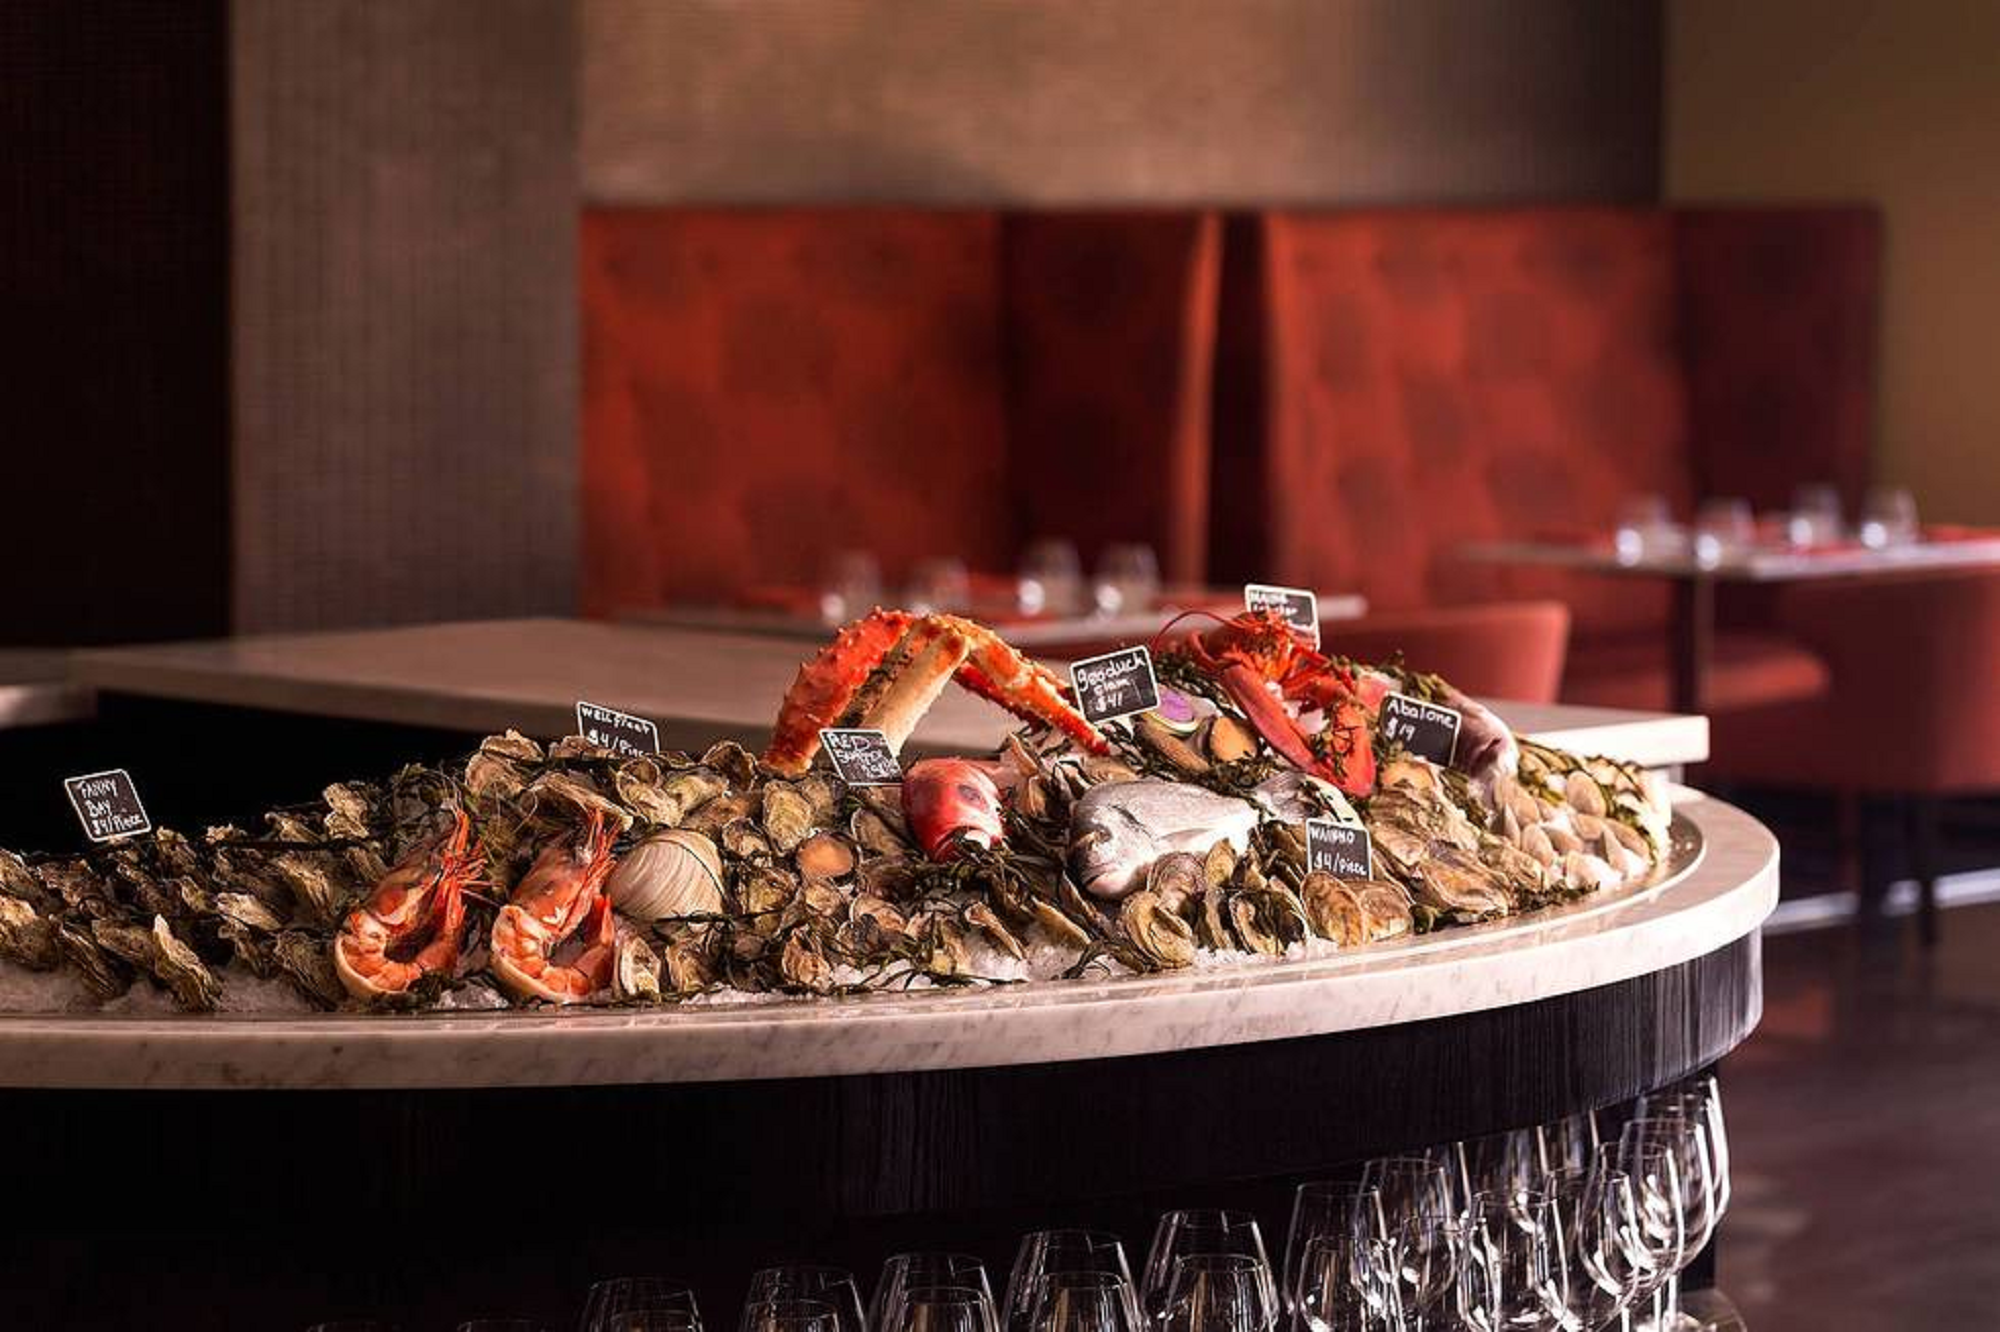 Aruba Ritz Carlton Raw Bar, Les Crustaces. Ritz Carlton